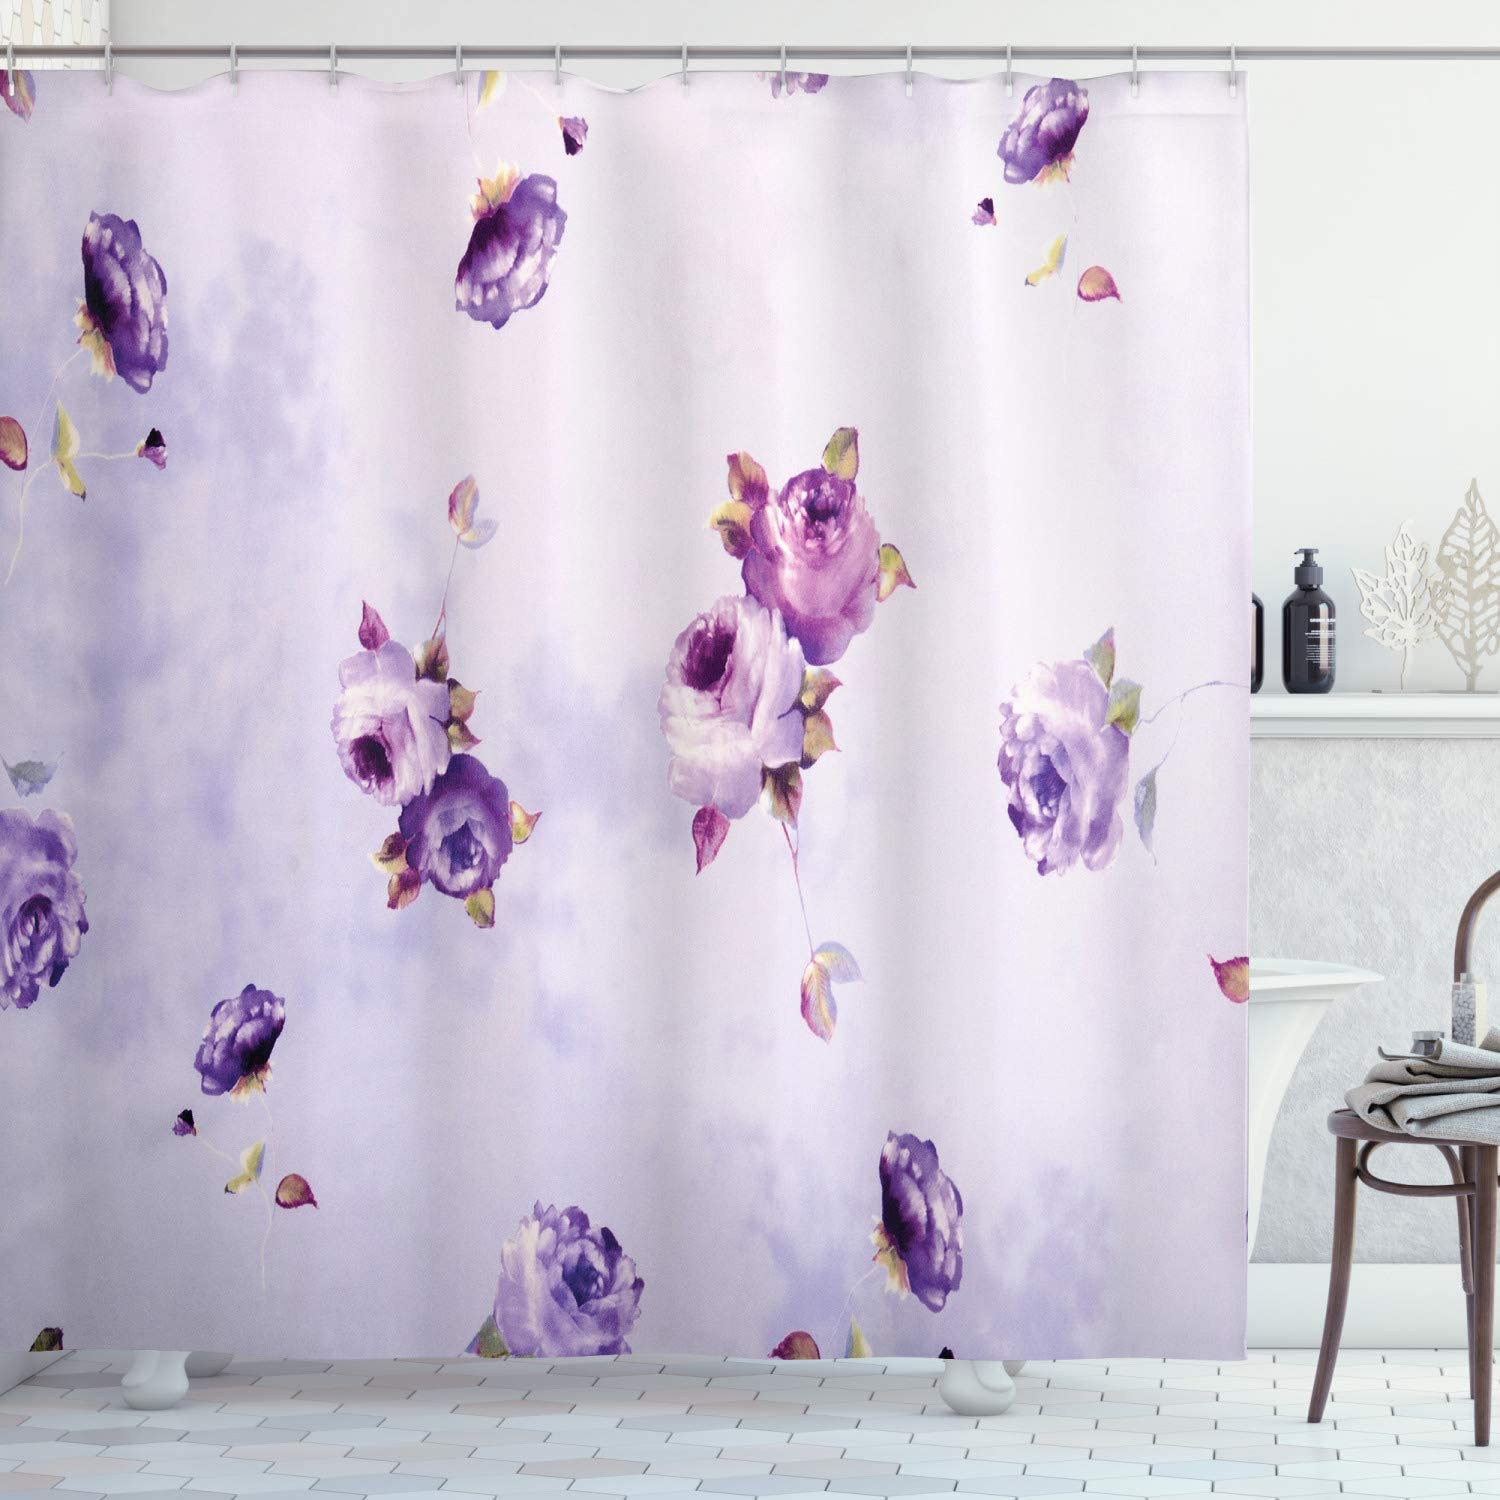 Ambesonne Rose Shower Curtain, Floral Pattern with Mauve Roses in Purple Color Dreamy Clouds Retro Soft Pale Art, Cloth Fabric Bathroom Decor Set with Hooks, 75